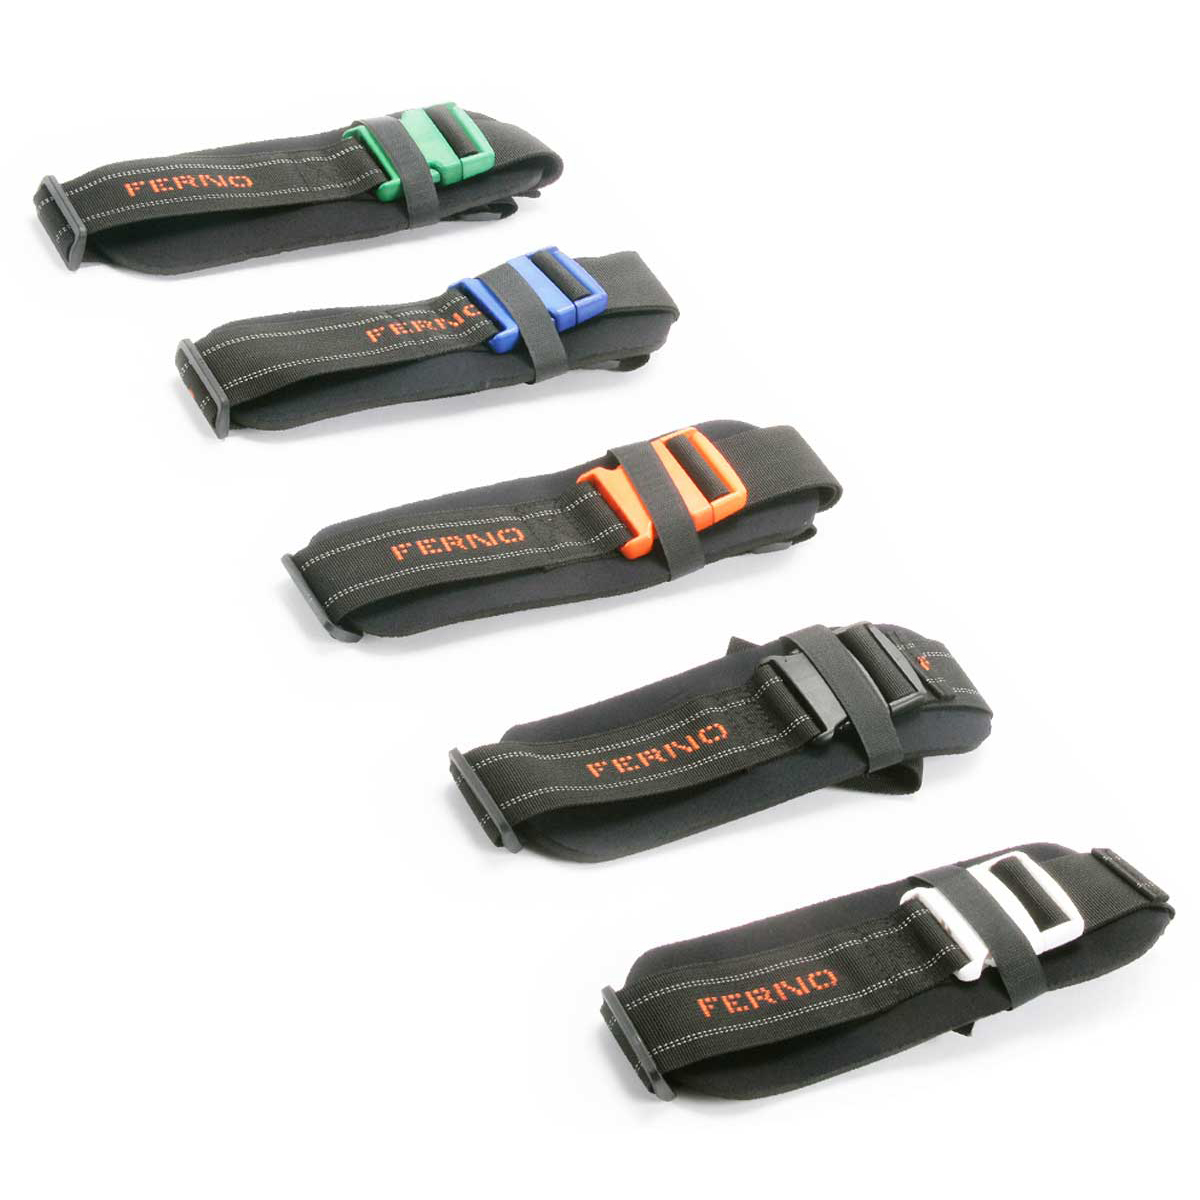 Set of 5 Aquaboard Straps